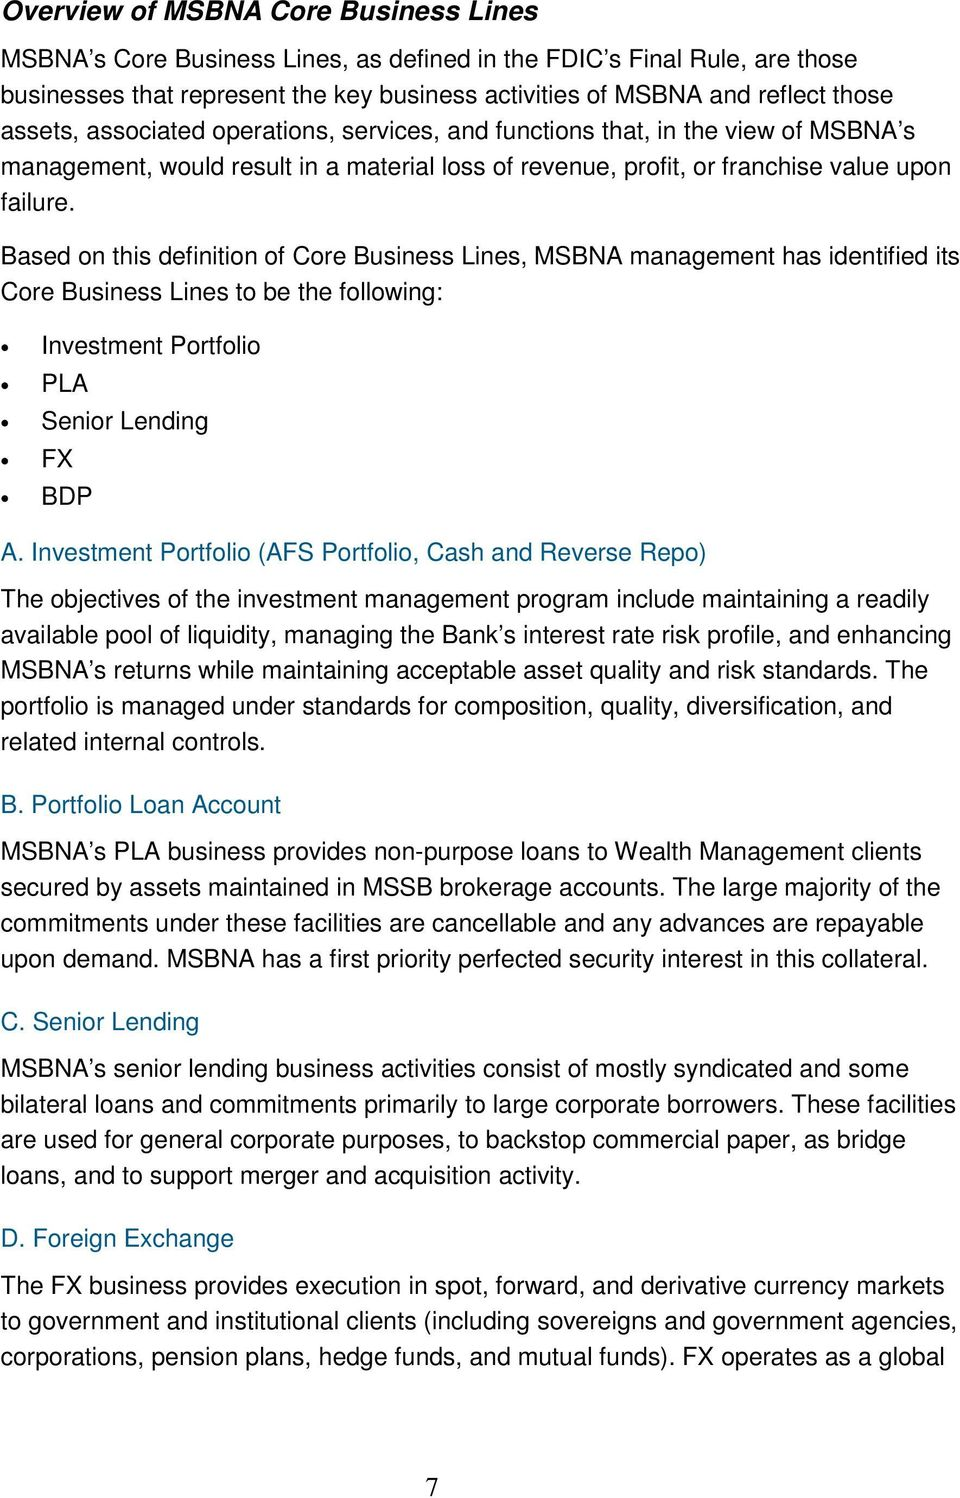 Based on this definition of Core Business Lines, MSBNA management has identified its Core Business Lines to be the following: Investment Portfolio PLA Senior Lending FX BDP A.